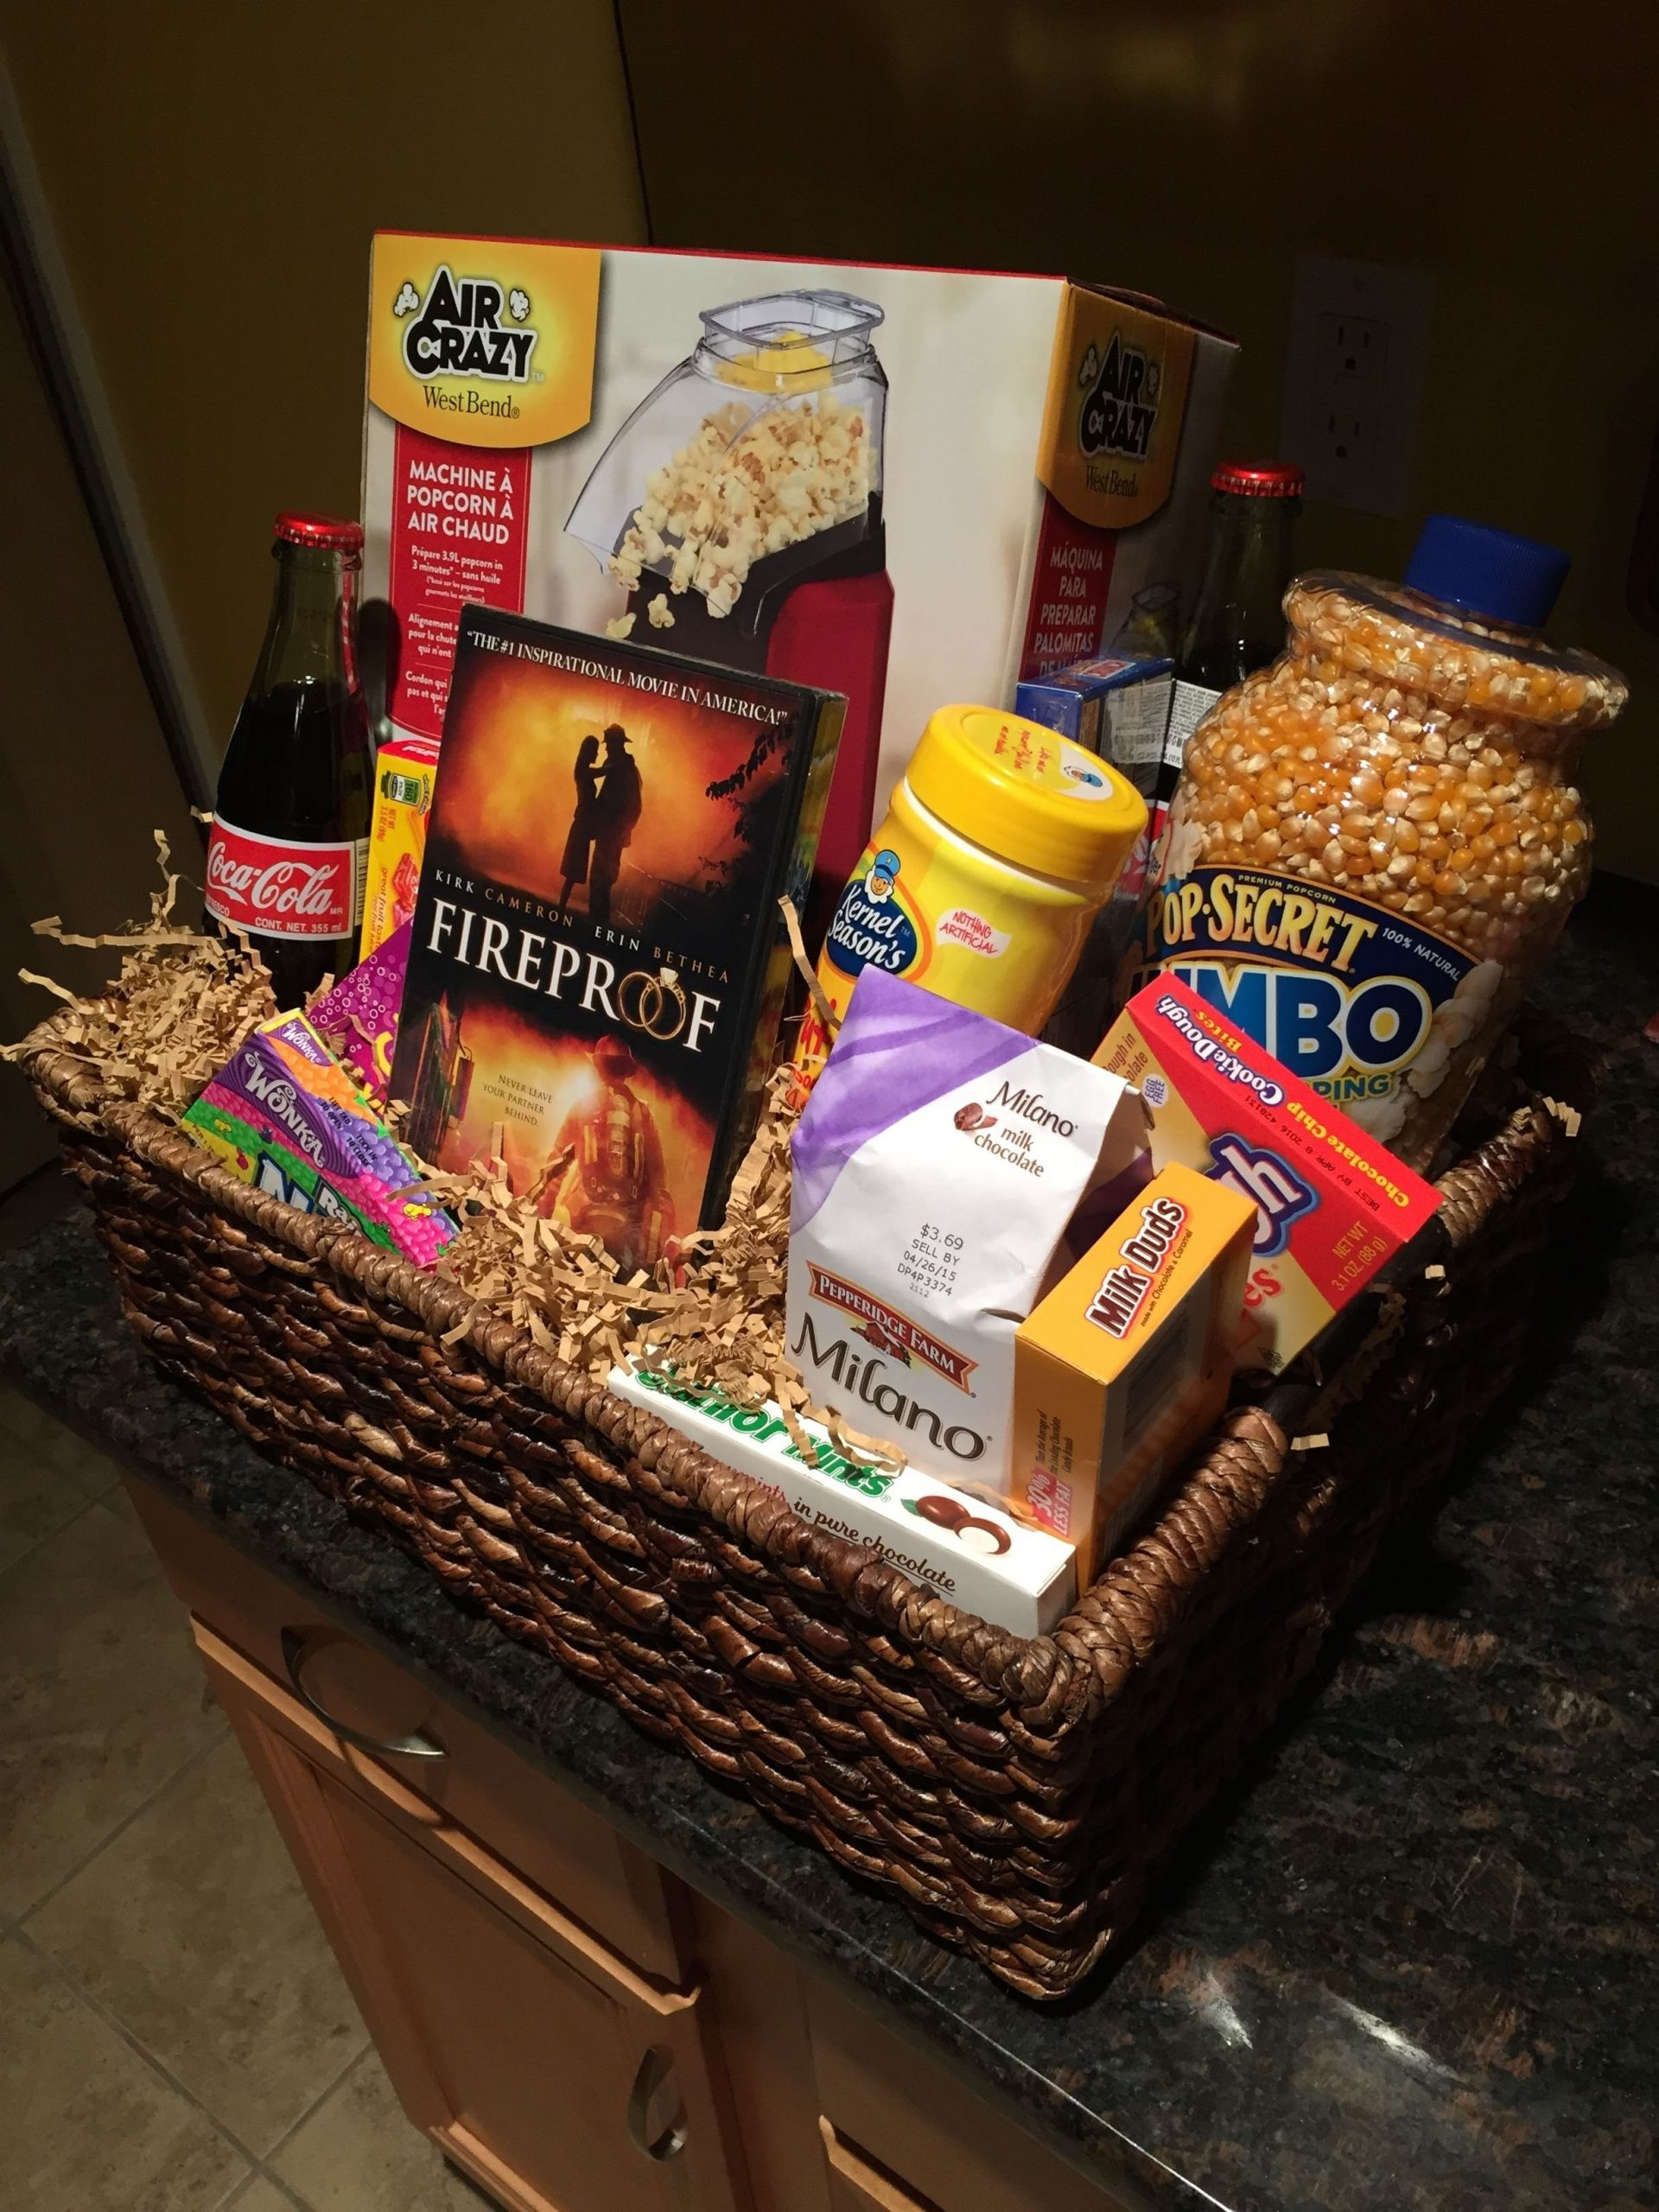 Gift Basket Ideas For Silent Auction Fundraiser  10 Best Ideas For Gift Baskets For Fundraisers 2019